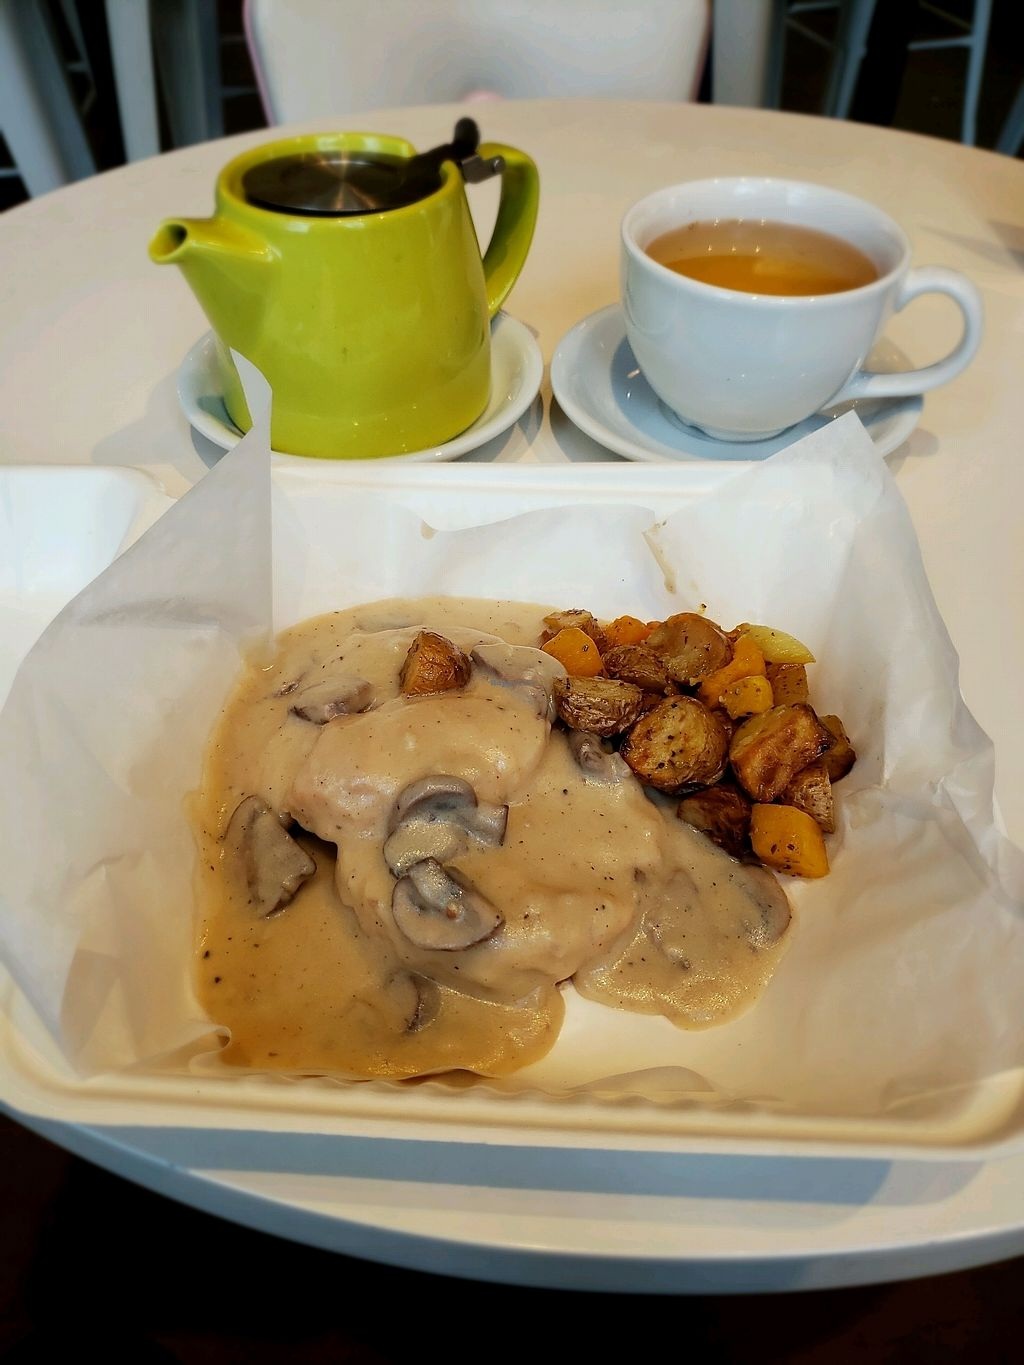 "Photo of Petunia's Pies and Pastries  by <a href=""/members/profile/MannaTea"">MannaTea</a> <br/>Biscuits & Gravy <br/> April 5, 2018  - <a href='/contact/abuse/image/37248/381285'>Report</a>"